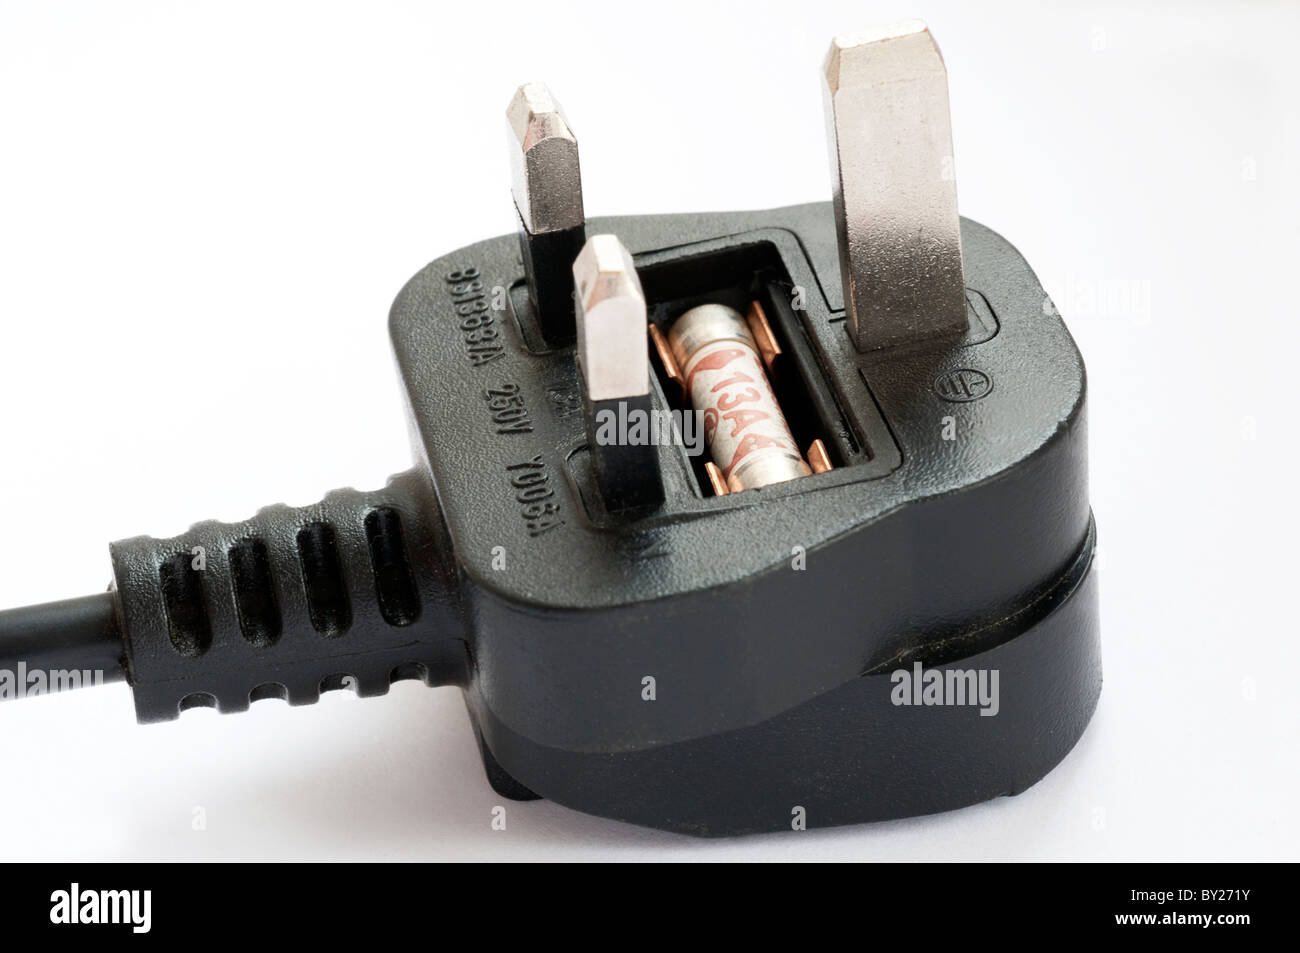 Electrical Plug Fuse on a White Background - Stock Image